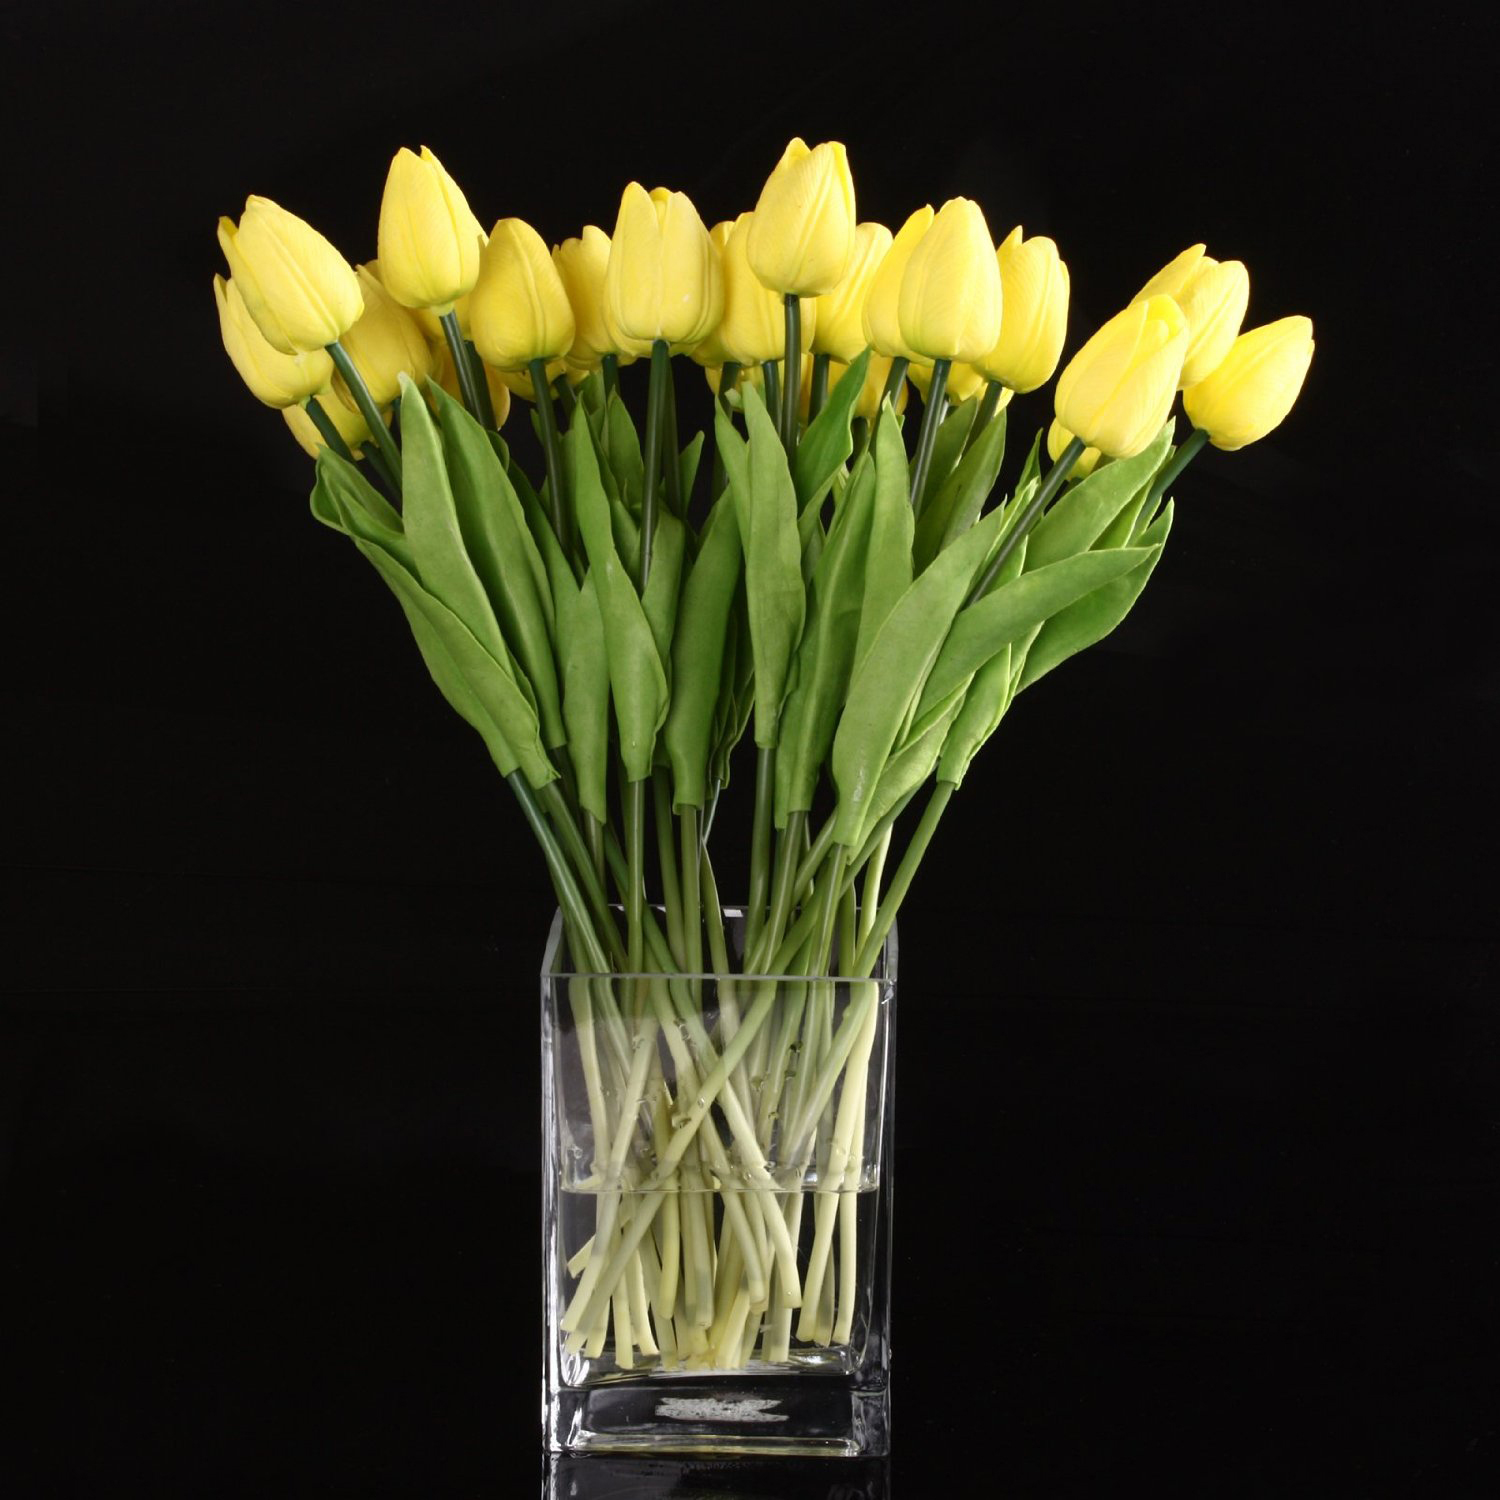 compare prices on yellow tulips online shopping buy low price